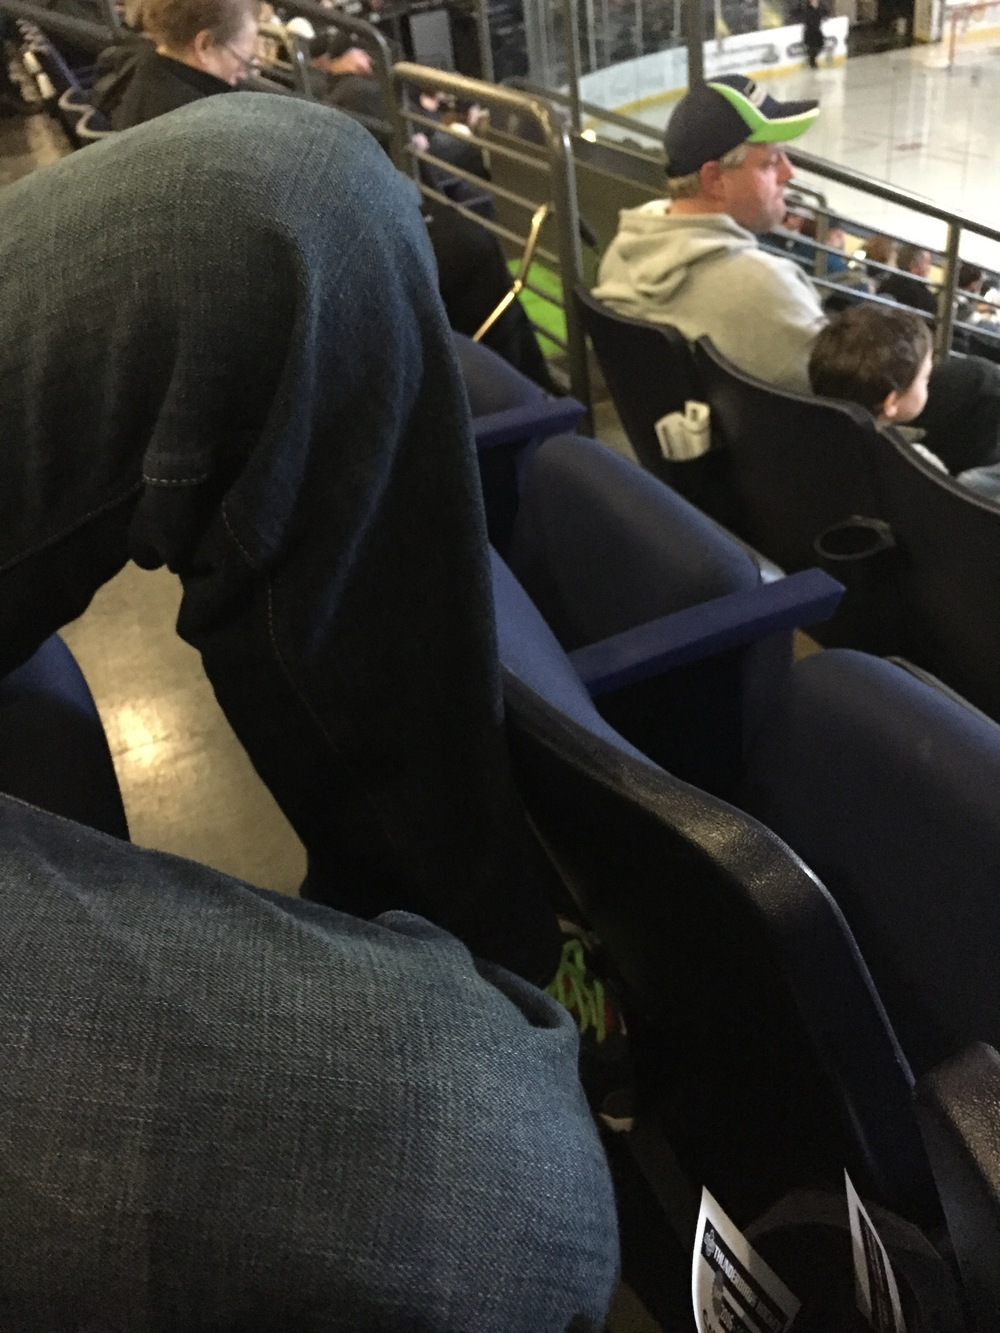 Chris's poor legs. No room at the hockey game for six foot boys and their long legs!